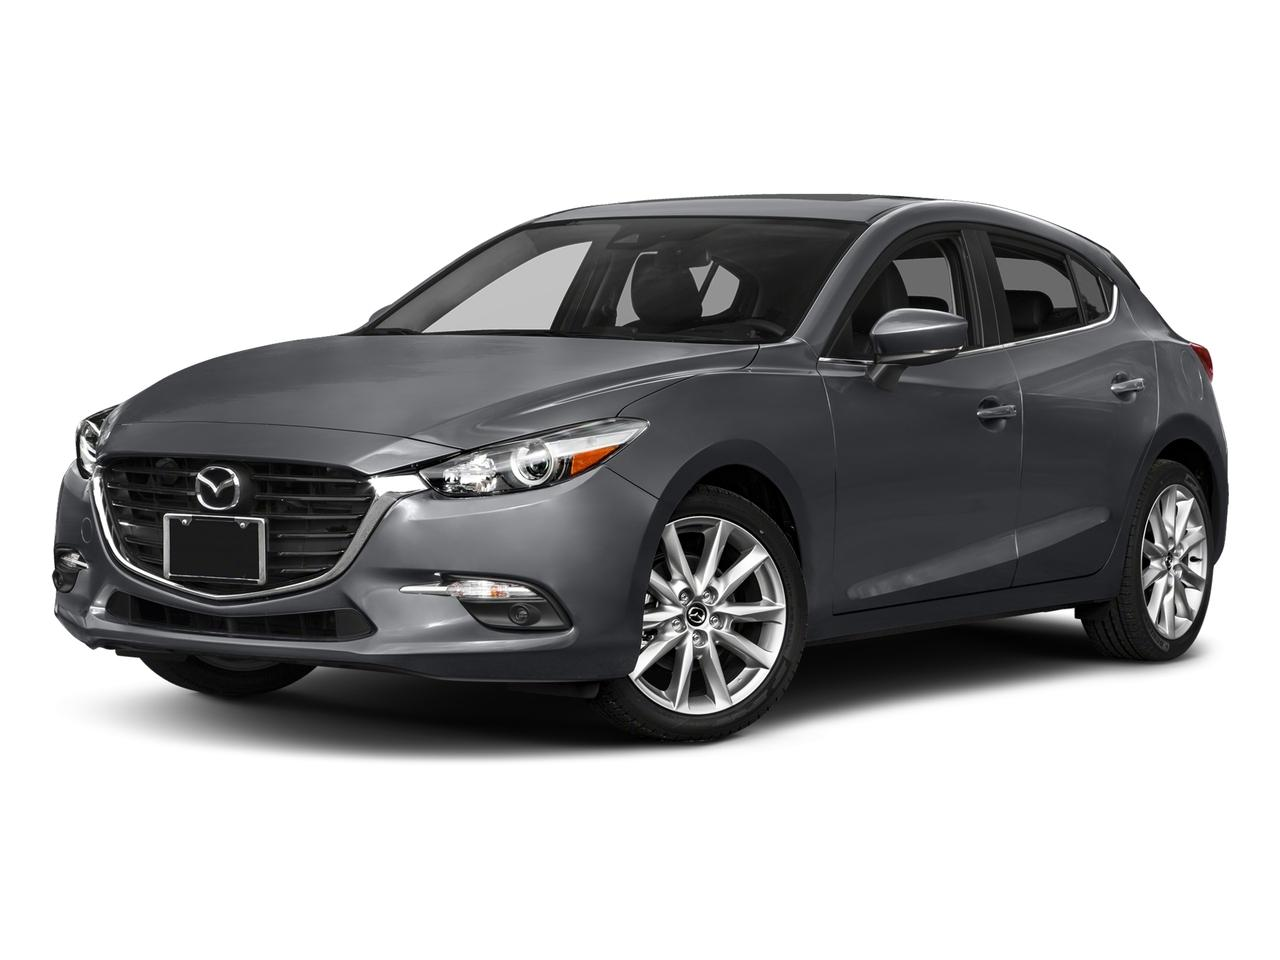 2017 Mazda Mazda3 5-Door Vehicle Photo in Appleton, WI 54913